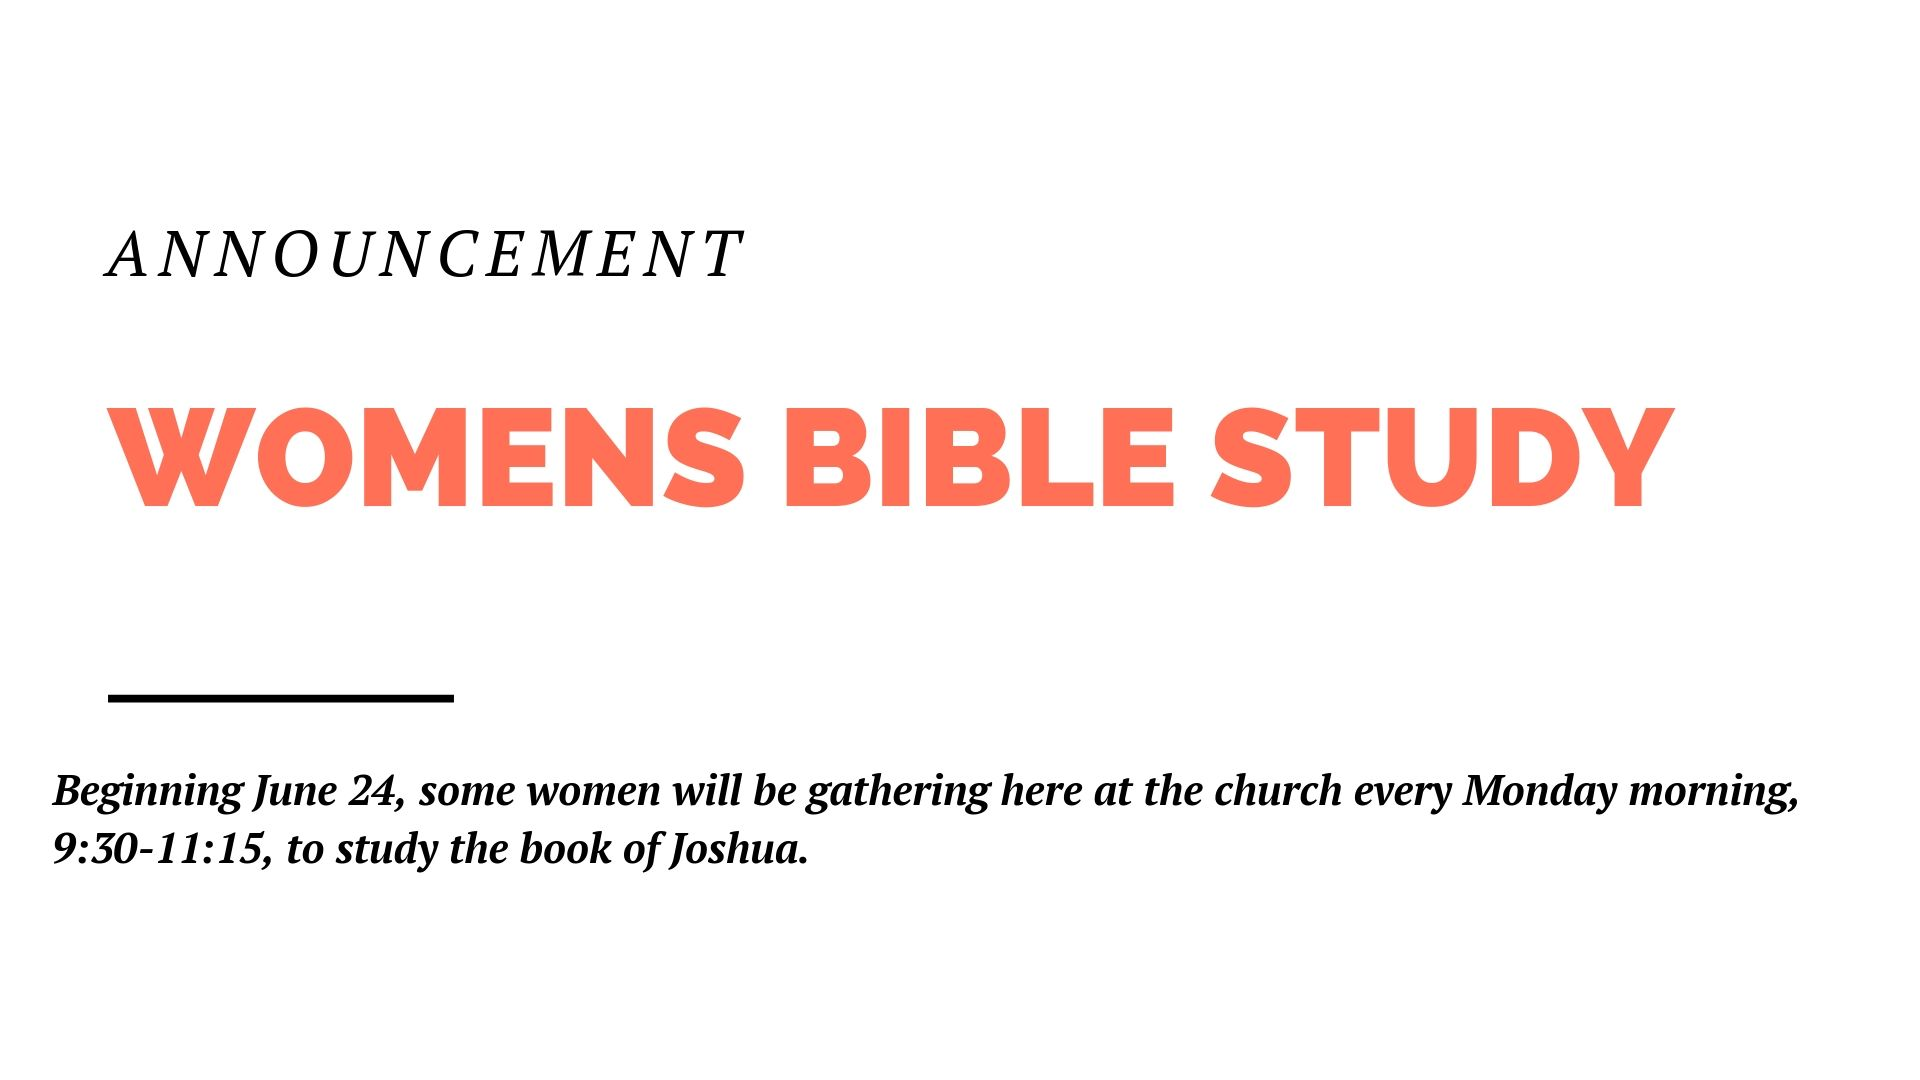 Beginning June 24, some women will be gathering at the church every Monday morning, 9:30-11:15, to study the book of Joshua. All women are welcome. You can find details on the church center app.